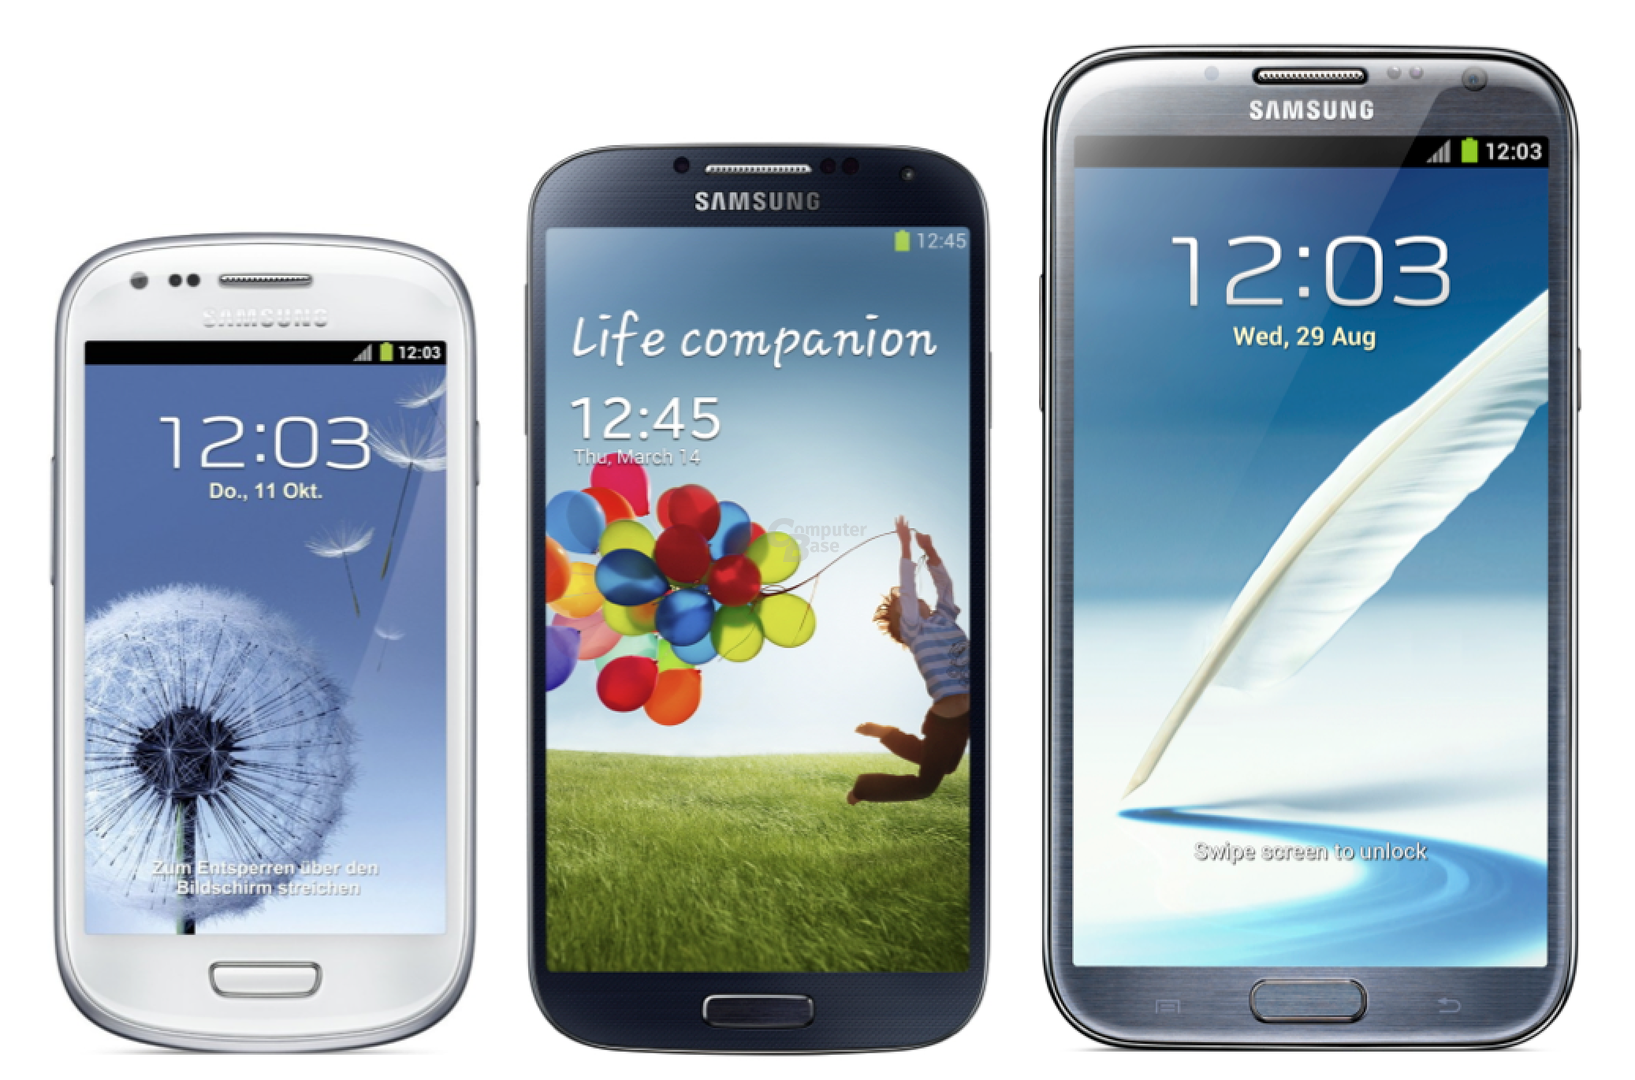 Samsung Galaxy S III mini vs. Galaxy S4 vs. Galaxy Note II